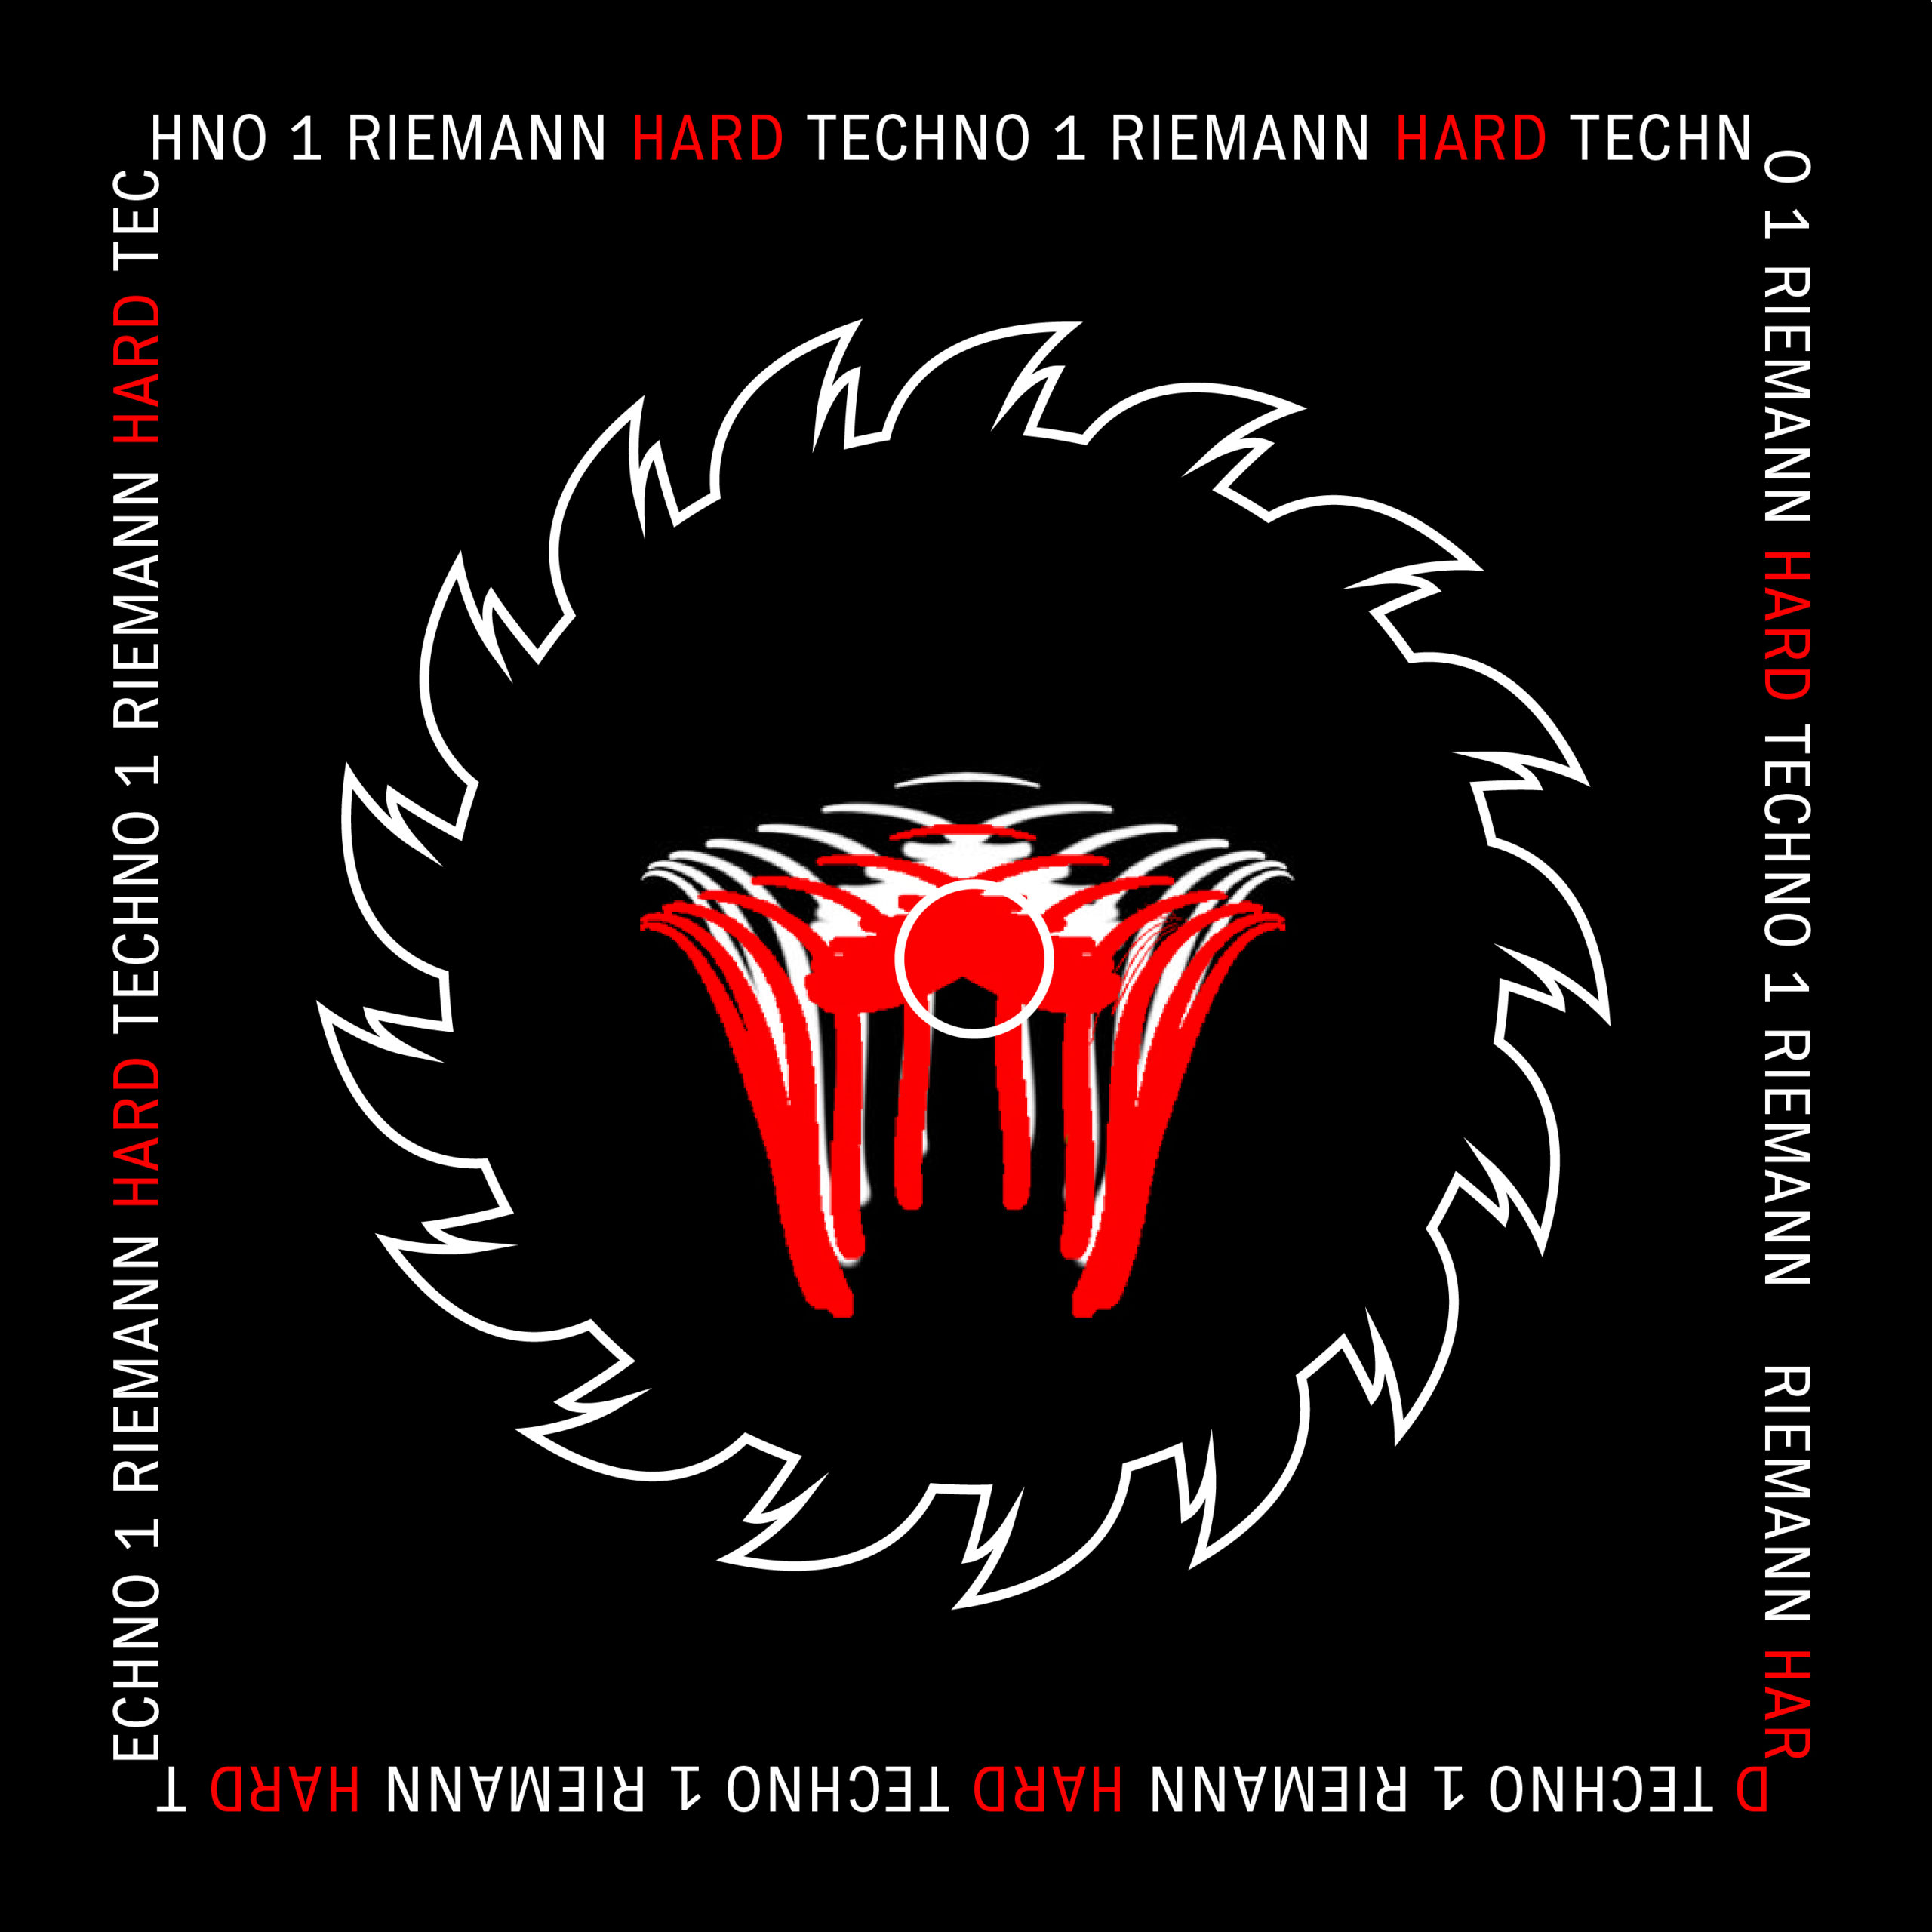 Riemann – Hard Techno 1